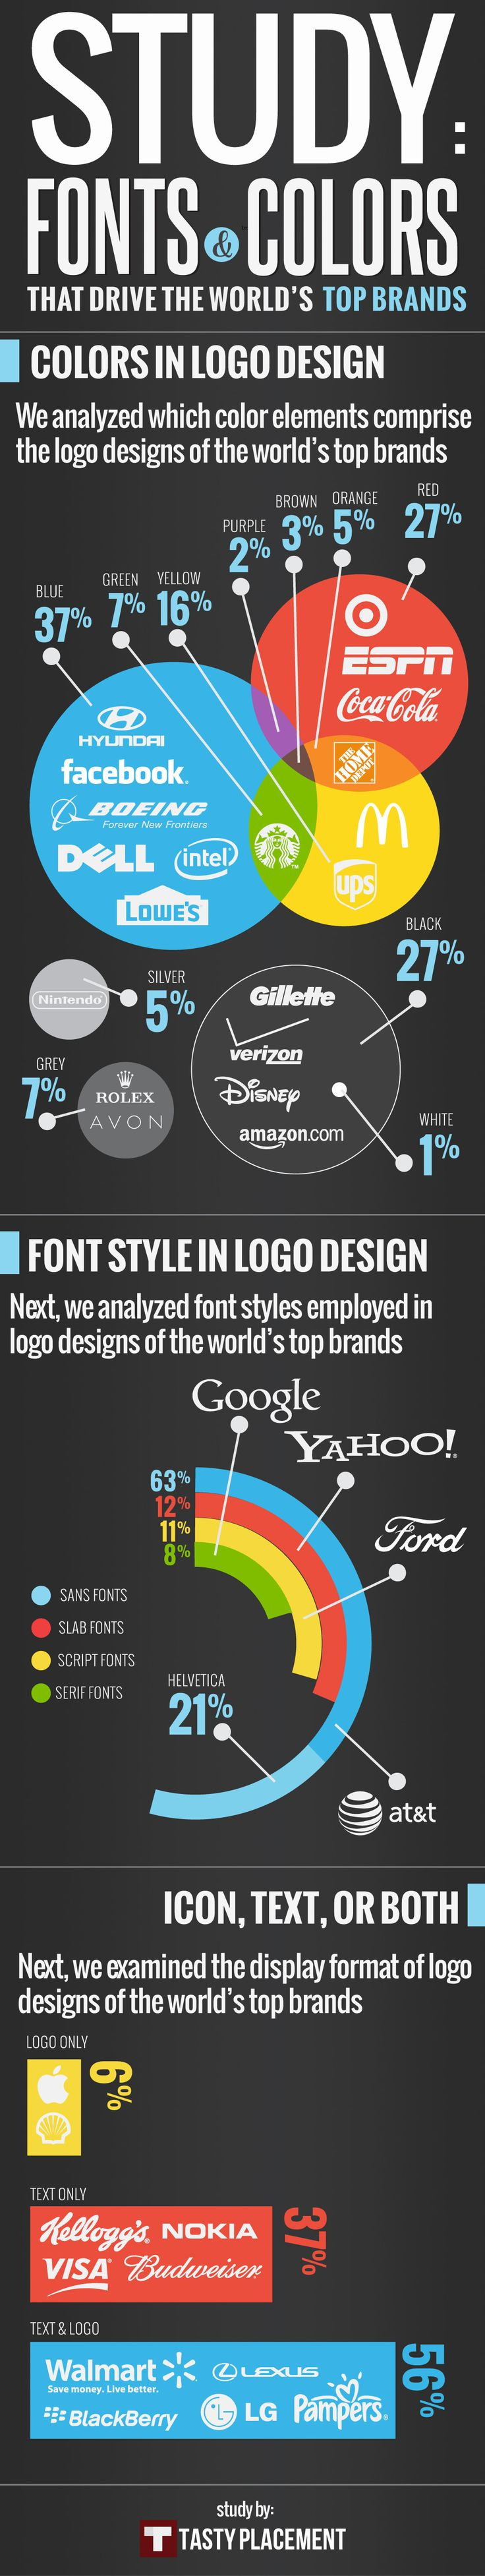 Infographic Study of the Fonts and Colors that drive the worlds top brands. #TASD #theagencysd @the Agency